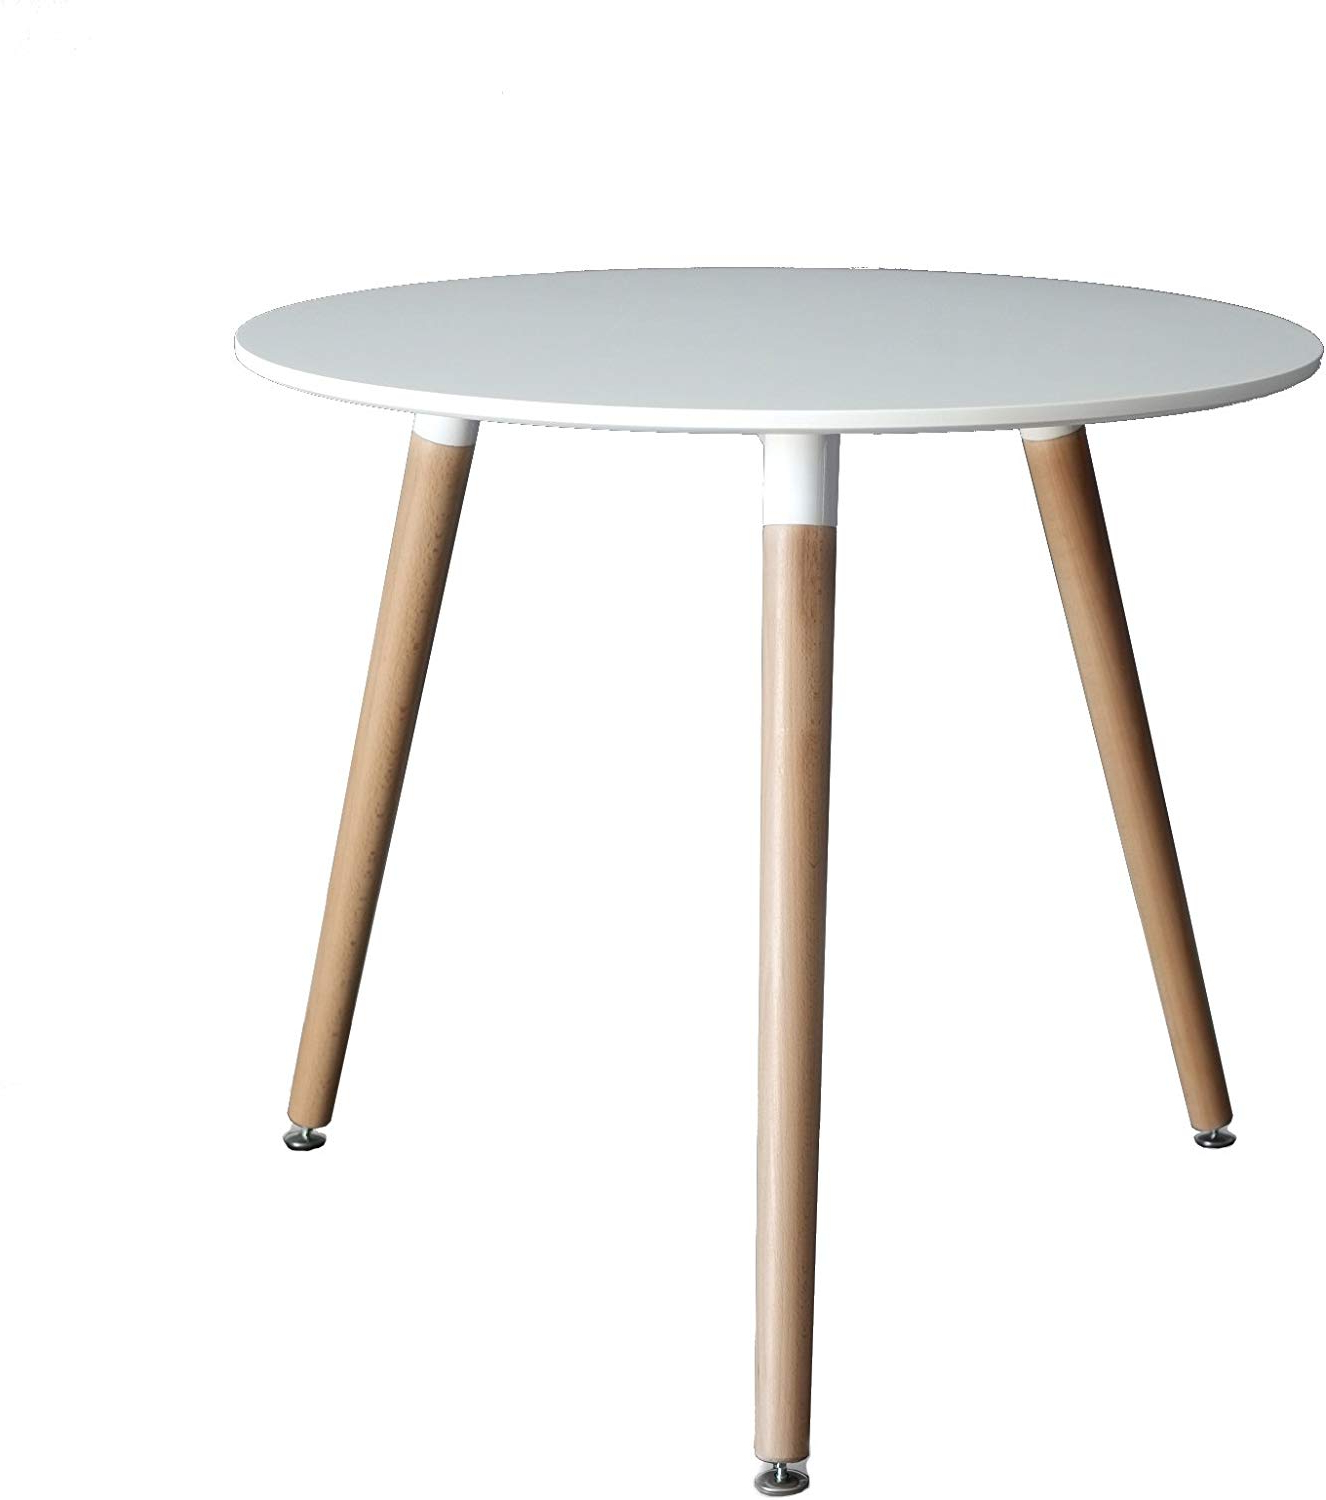 Recent Inspirer Studio® Eames Style Side Table With Natural Wood Legs Eiffel  Dining Room Table Lounge Table (Table White) With Regard To Eames Style Dining Tables With Wooden Legs (View 27 of 30)